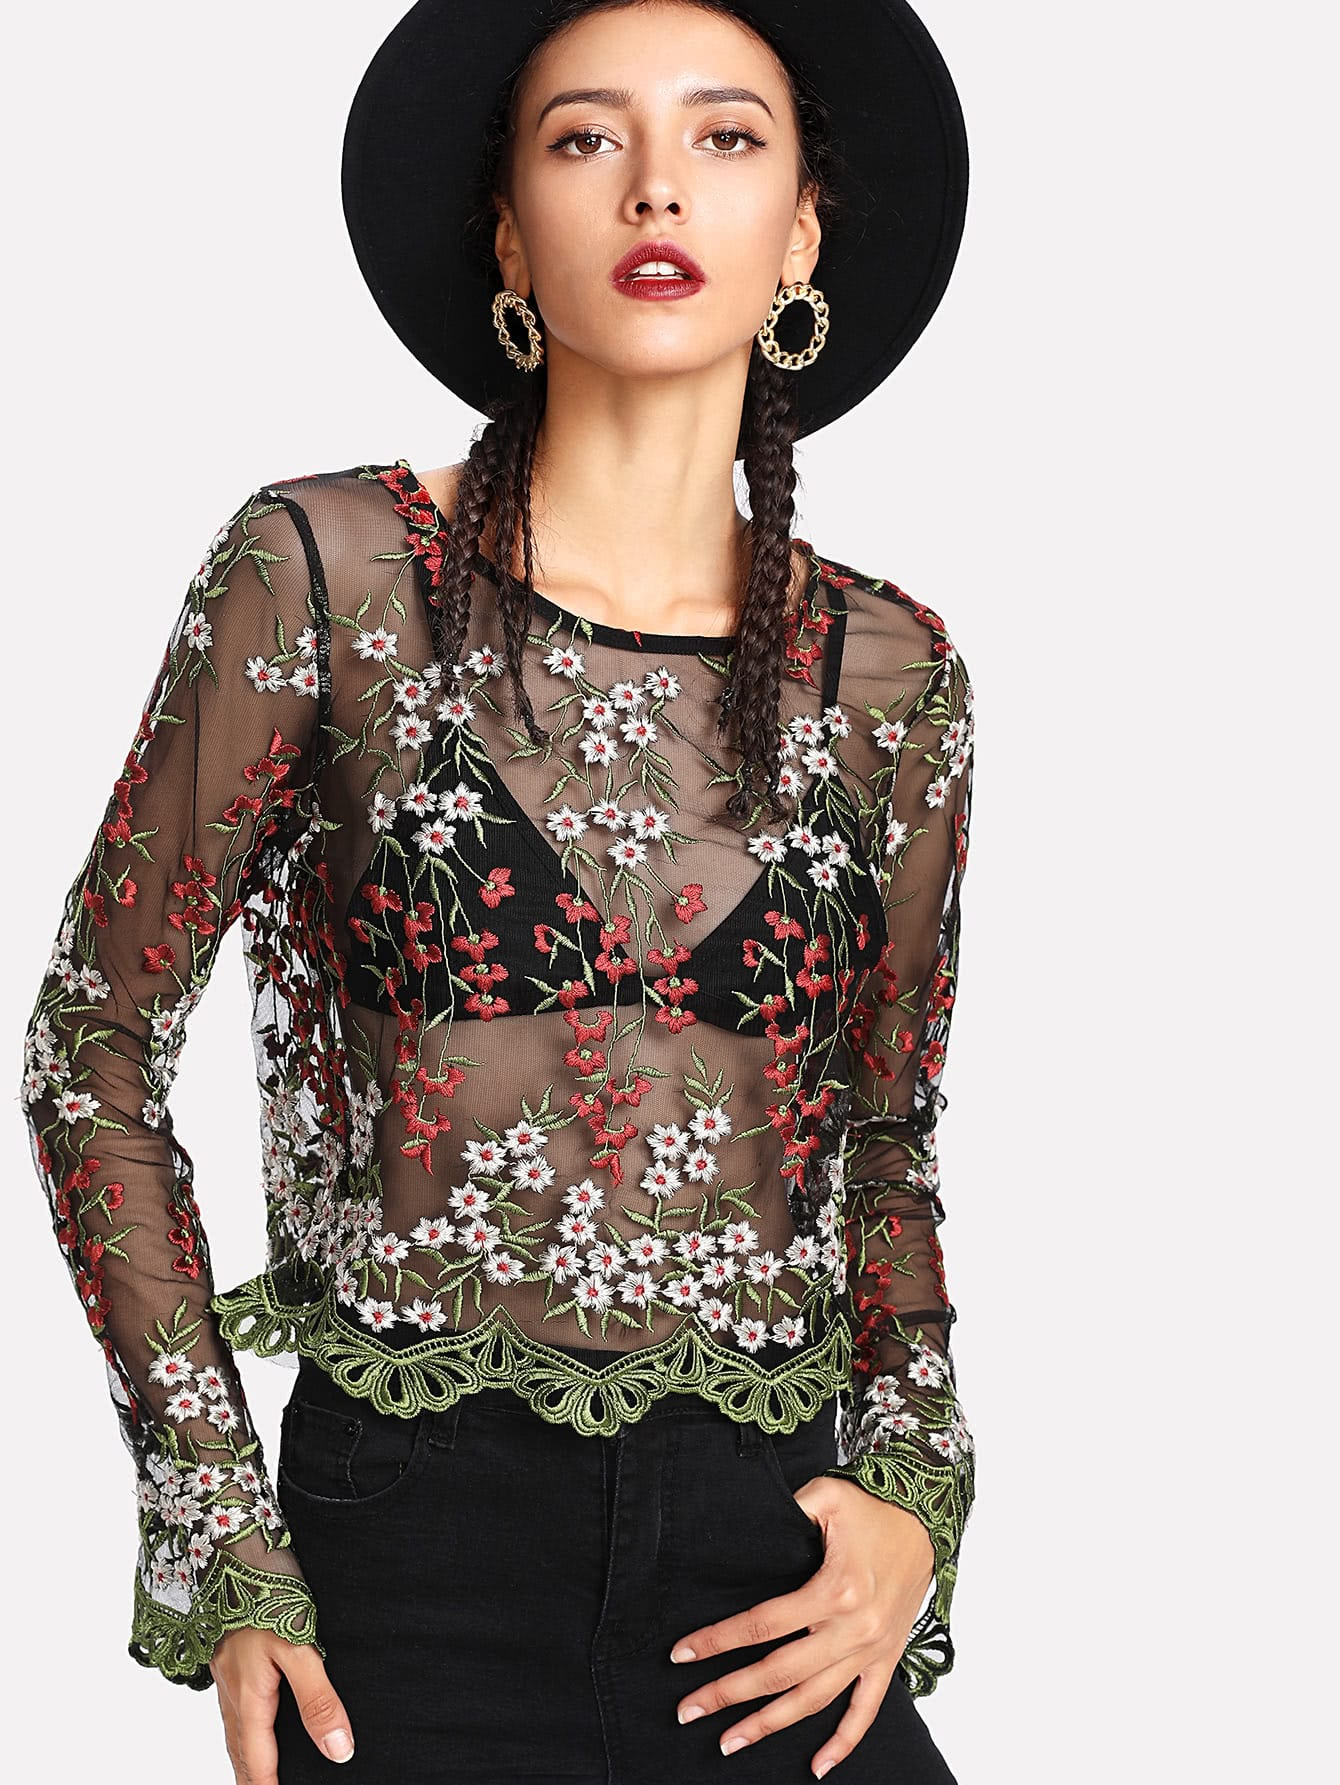 Embroidery Mesh Scalloped Crop Top blouse171026469